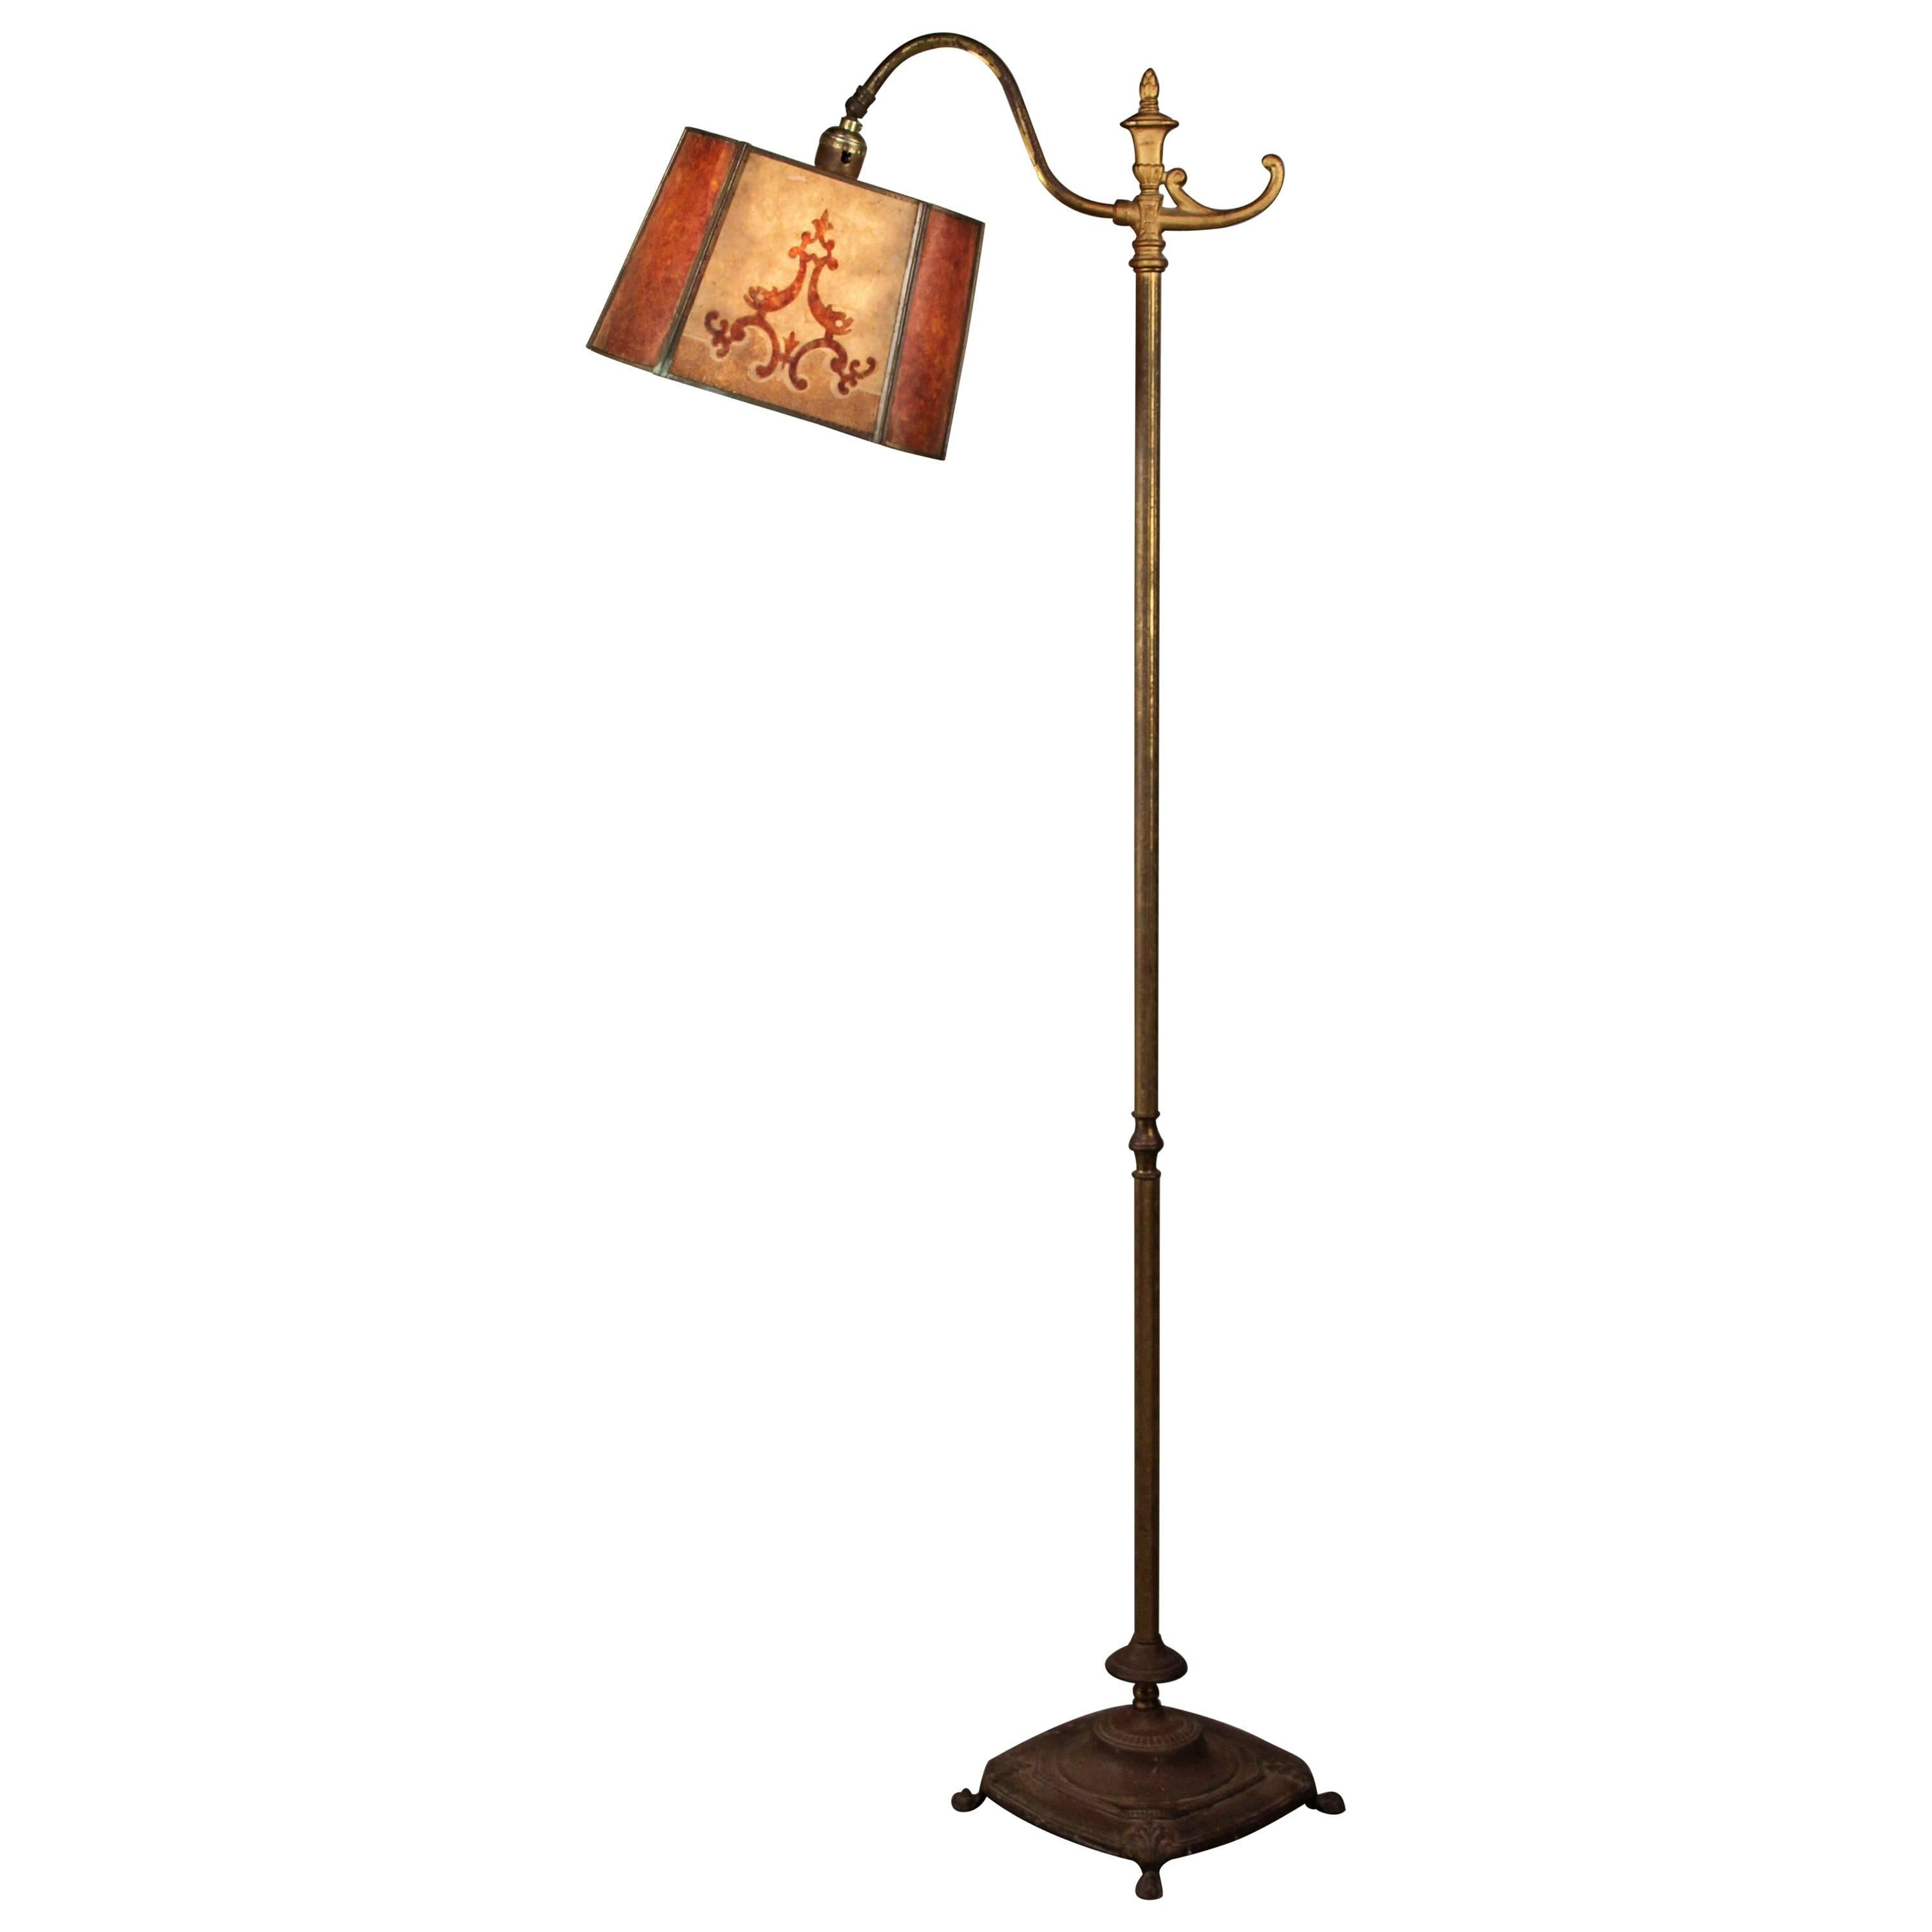 1920s Floor Lamps - 112 For Sale at 1stdibs